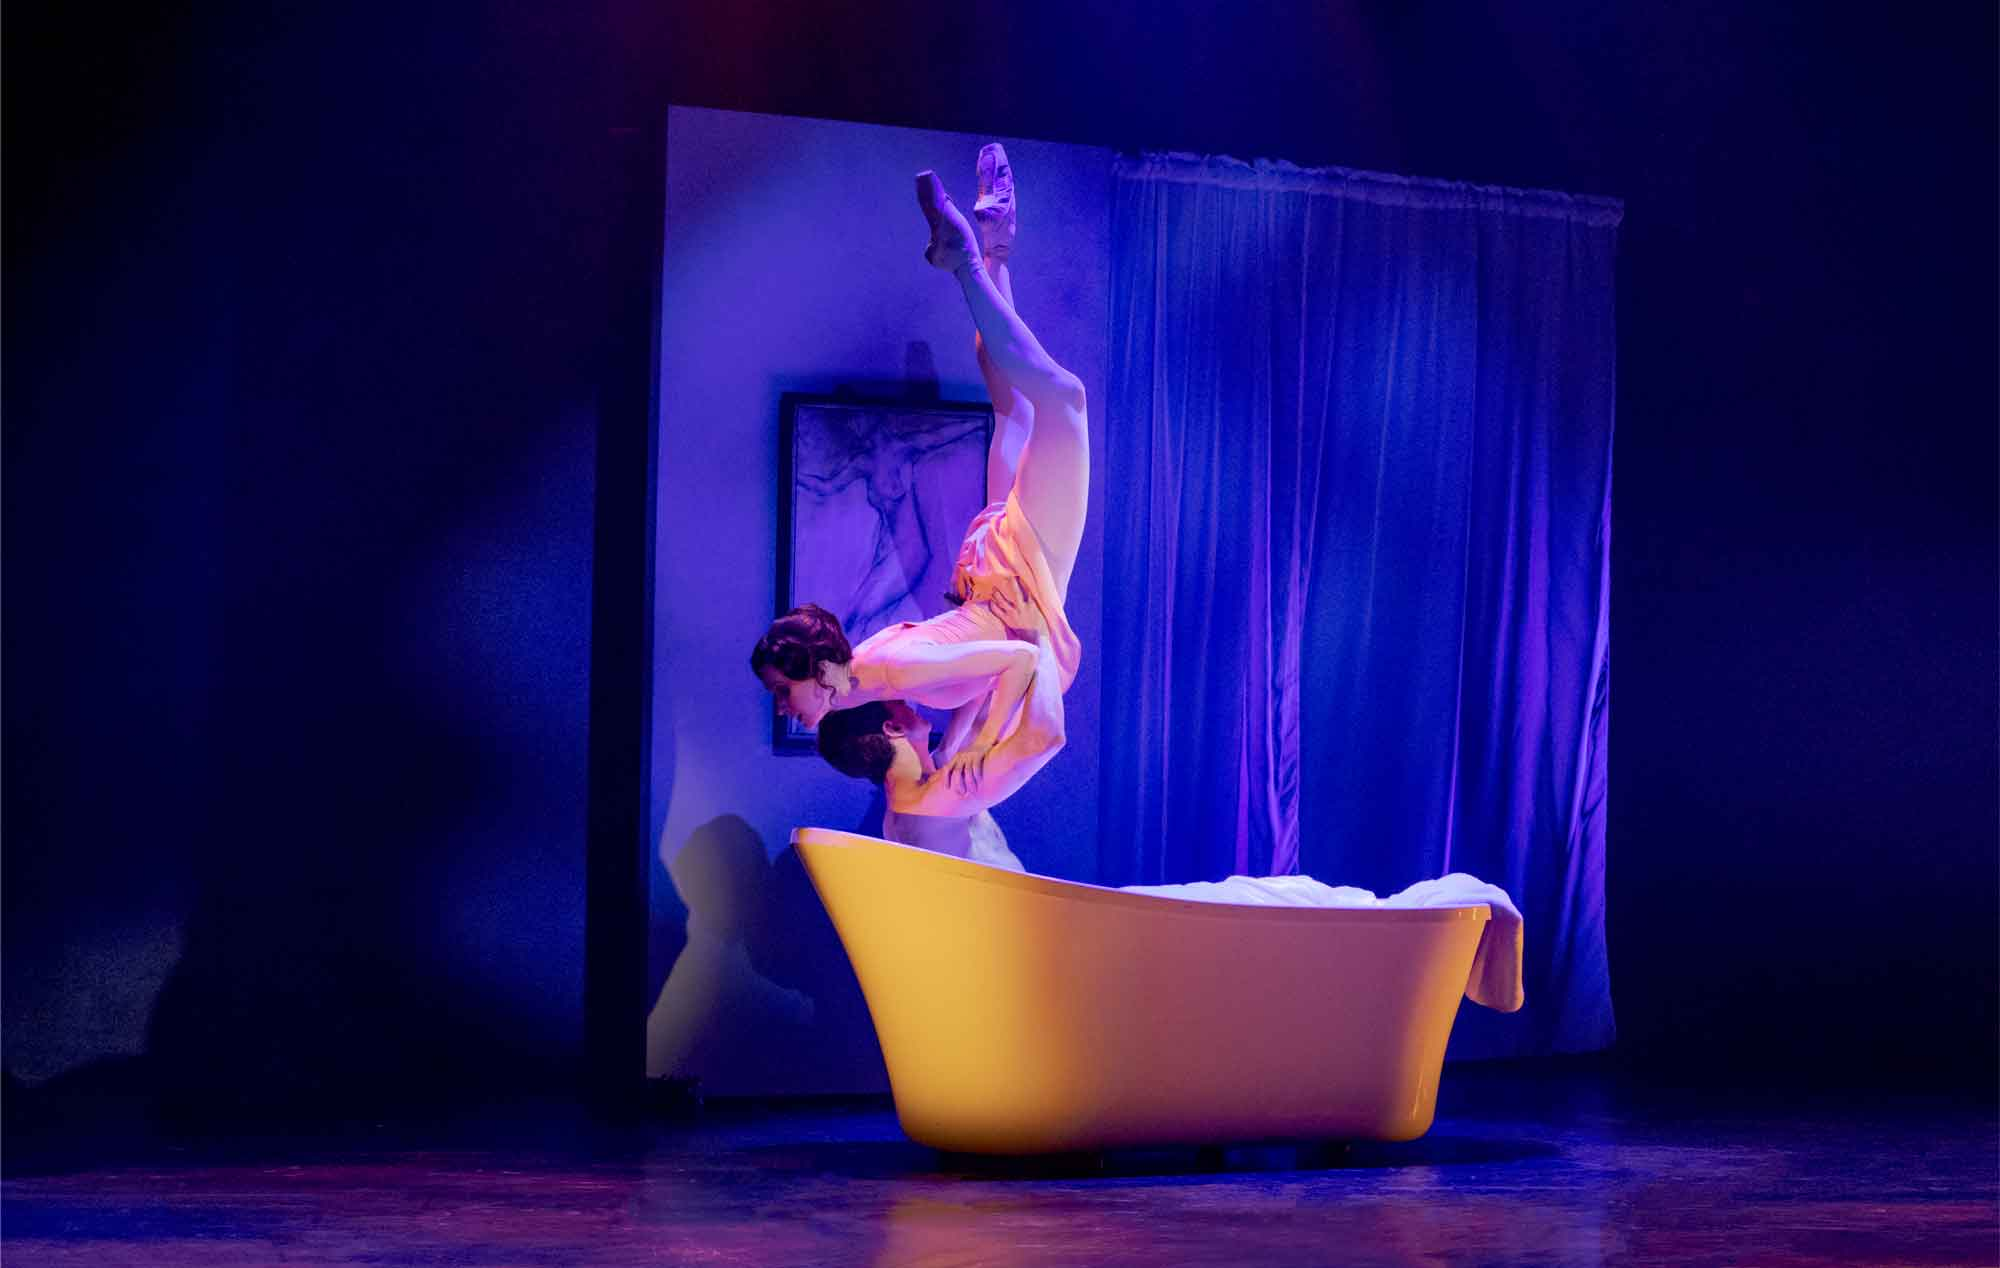 Woman suspended in an upside down lift in a bathroom. Male partner is lying in the tub and holding her in the air. There is dim lighting.